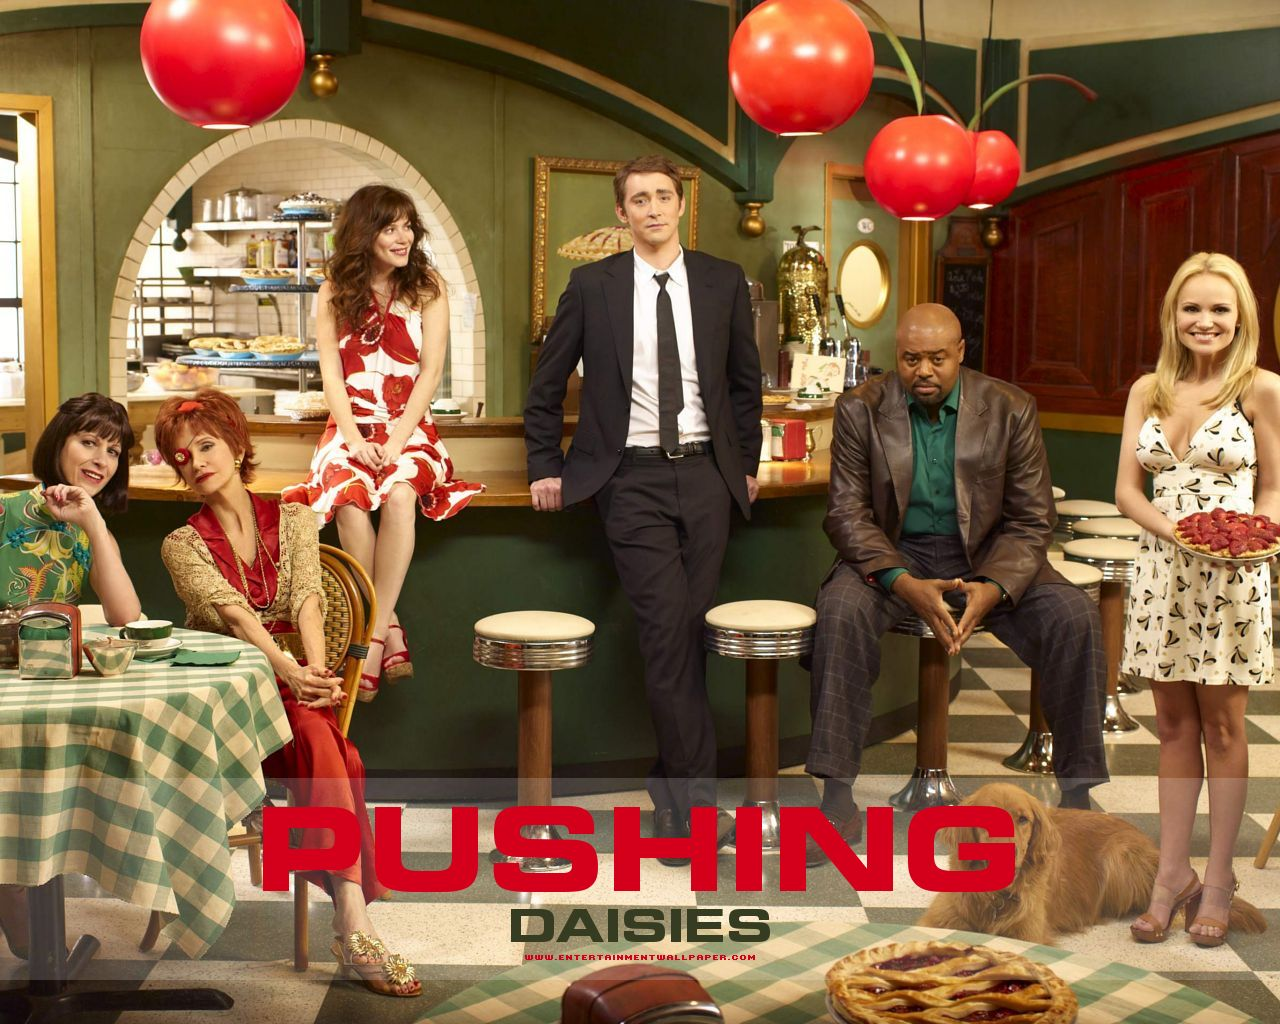 https://i1.wp.com/images.fanpop.com/images/image_uploads/Pushing-Daisies-Cast-pushing-daisies-791484_1280_1024.jpg